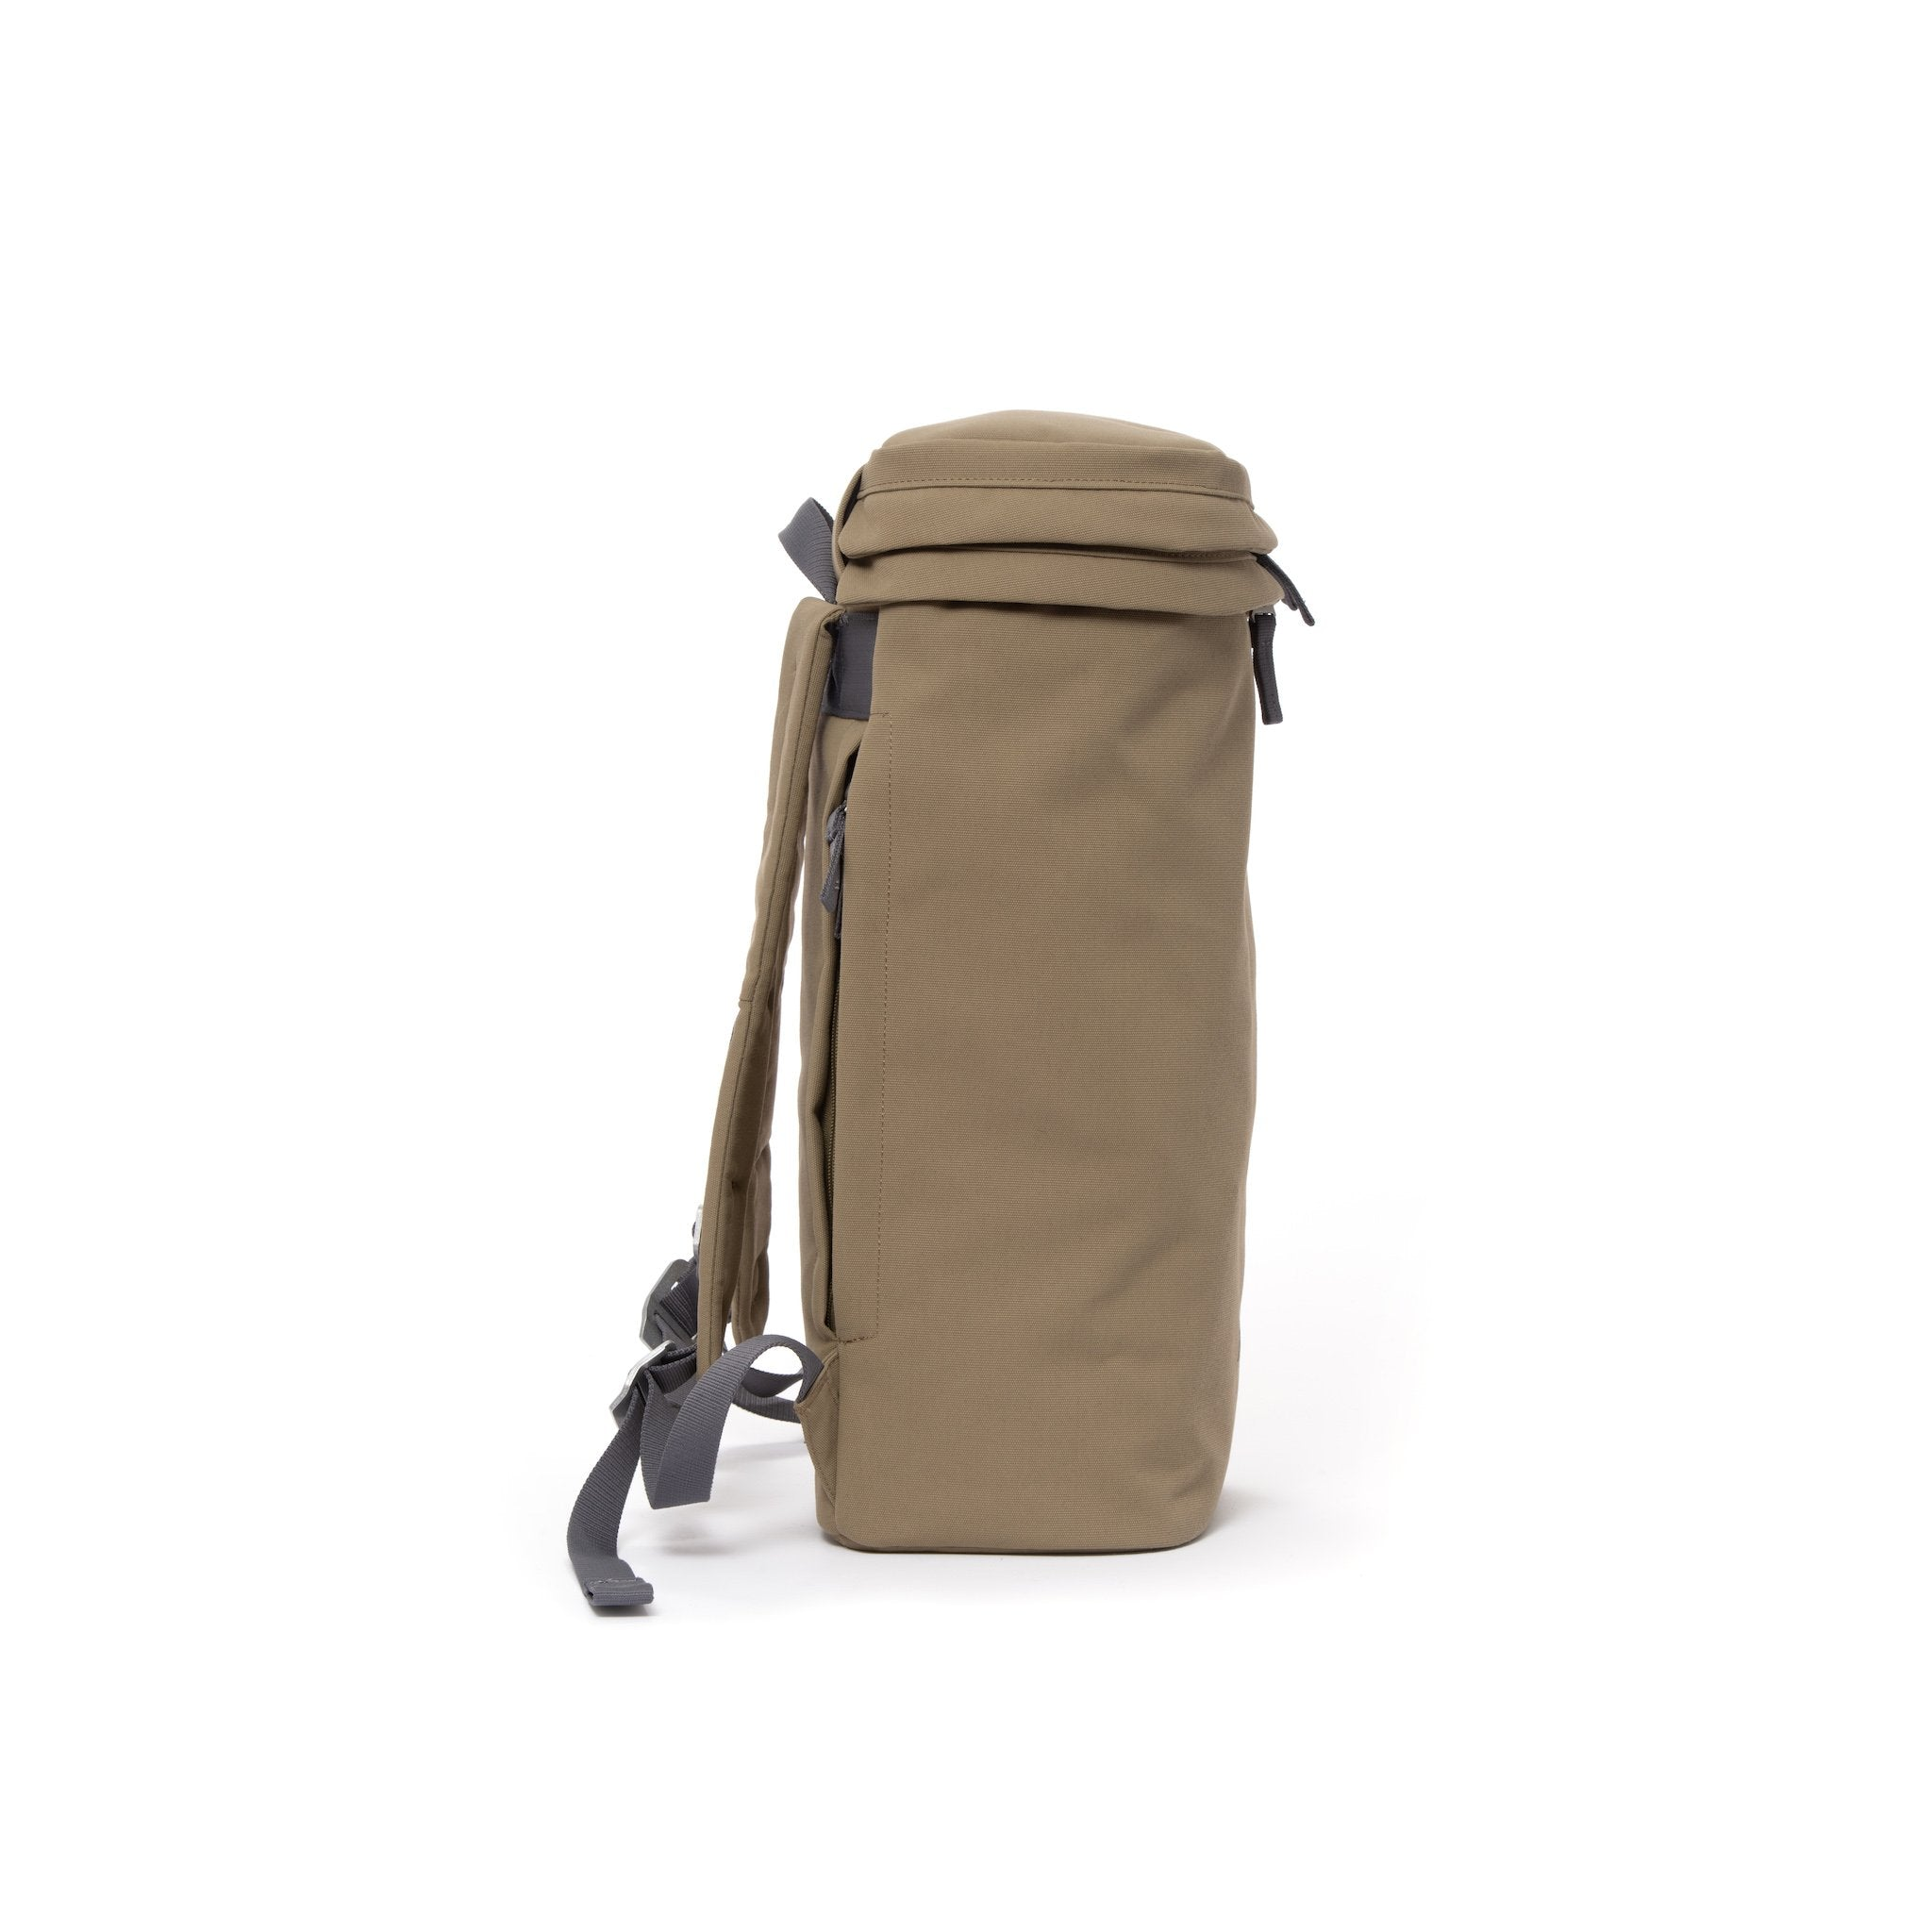 Khaki canvas backpack with top zip pocket.